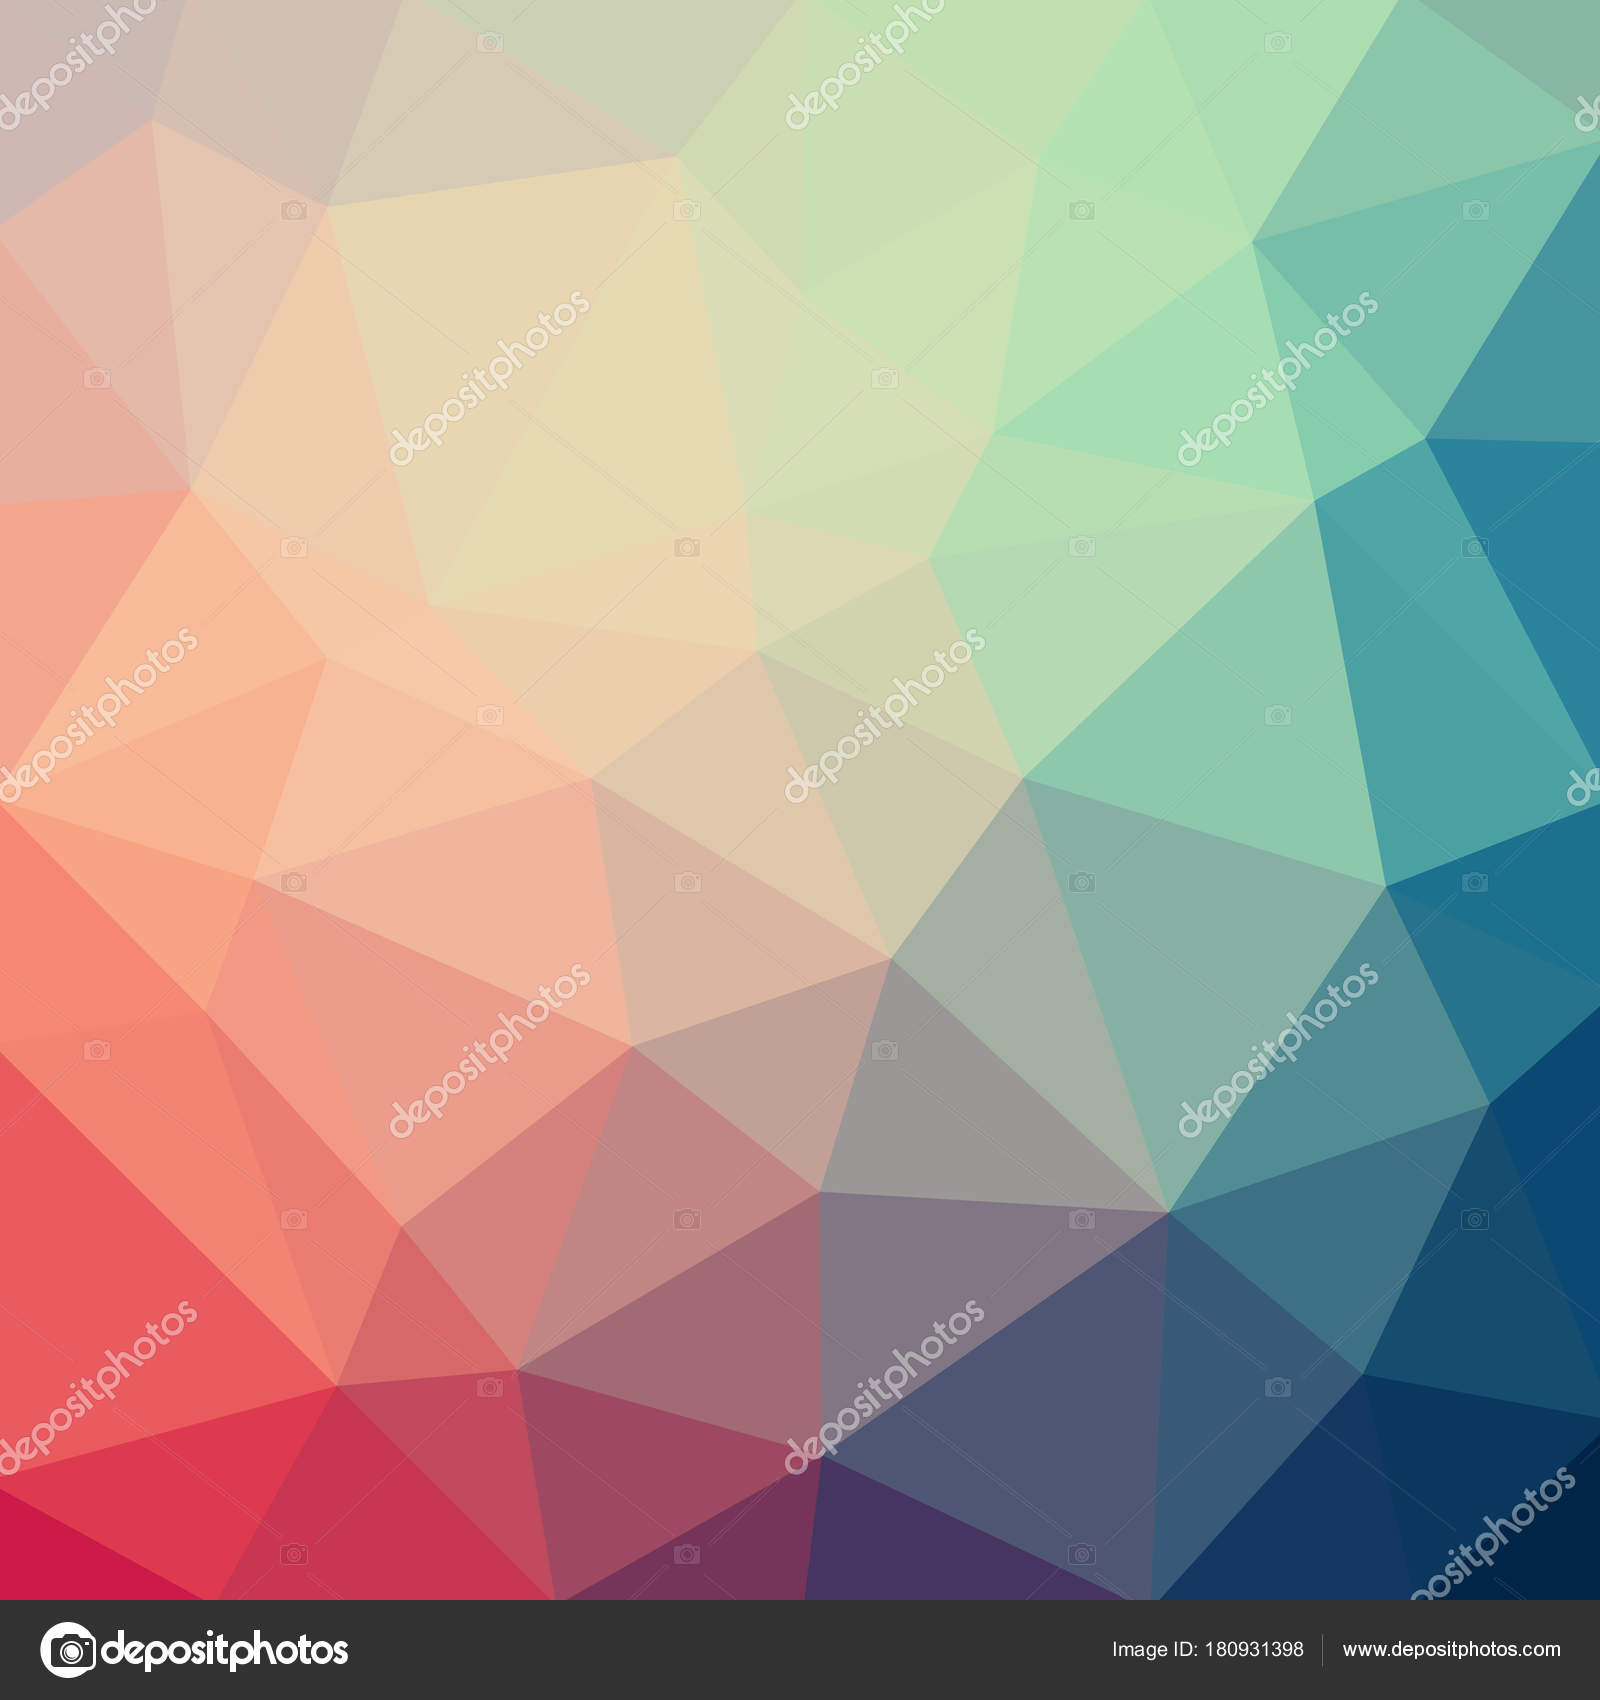 Fabulous Light Pastel Color Vector Low Poly Crystal Background. Polygon inside Set Color Pattern Design